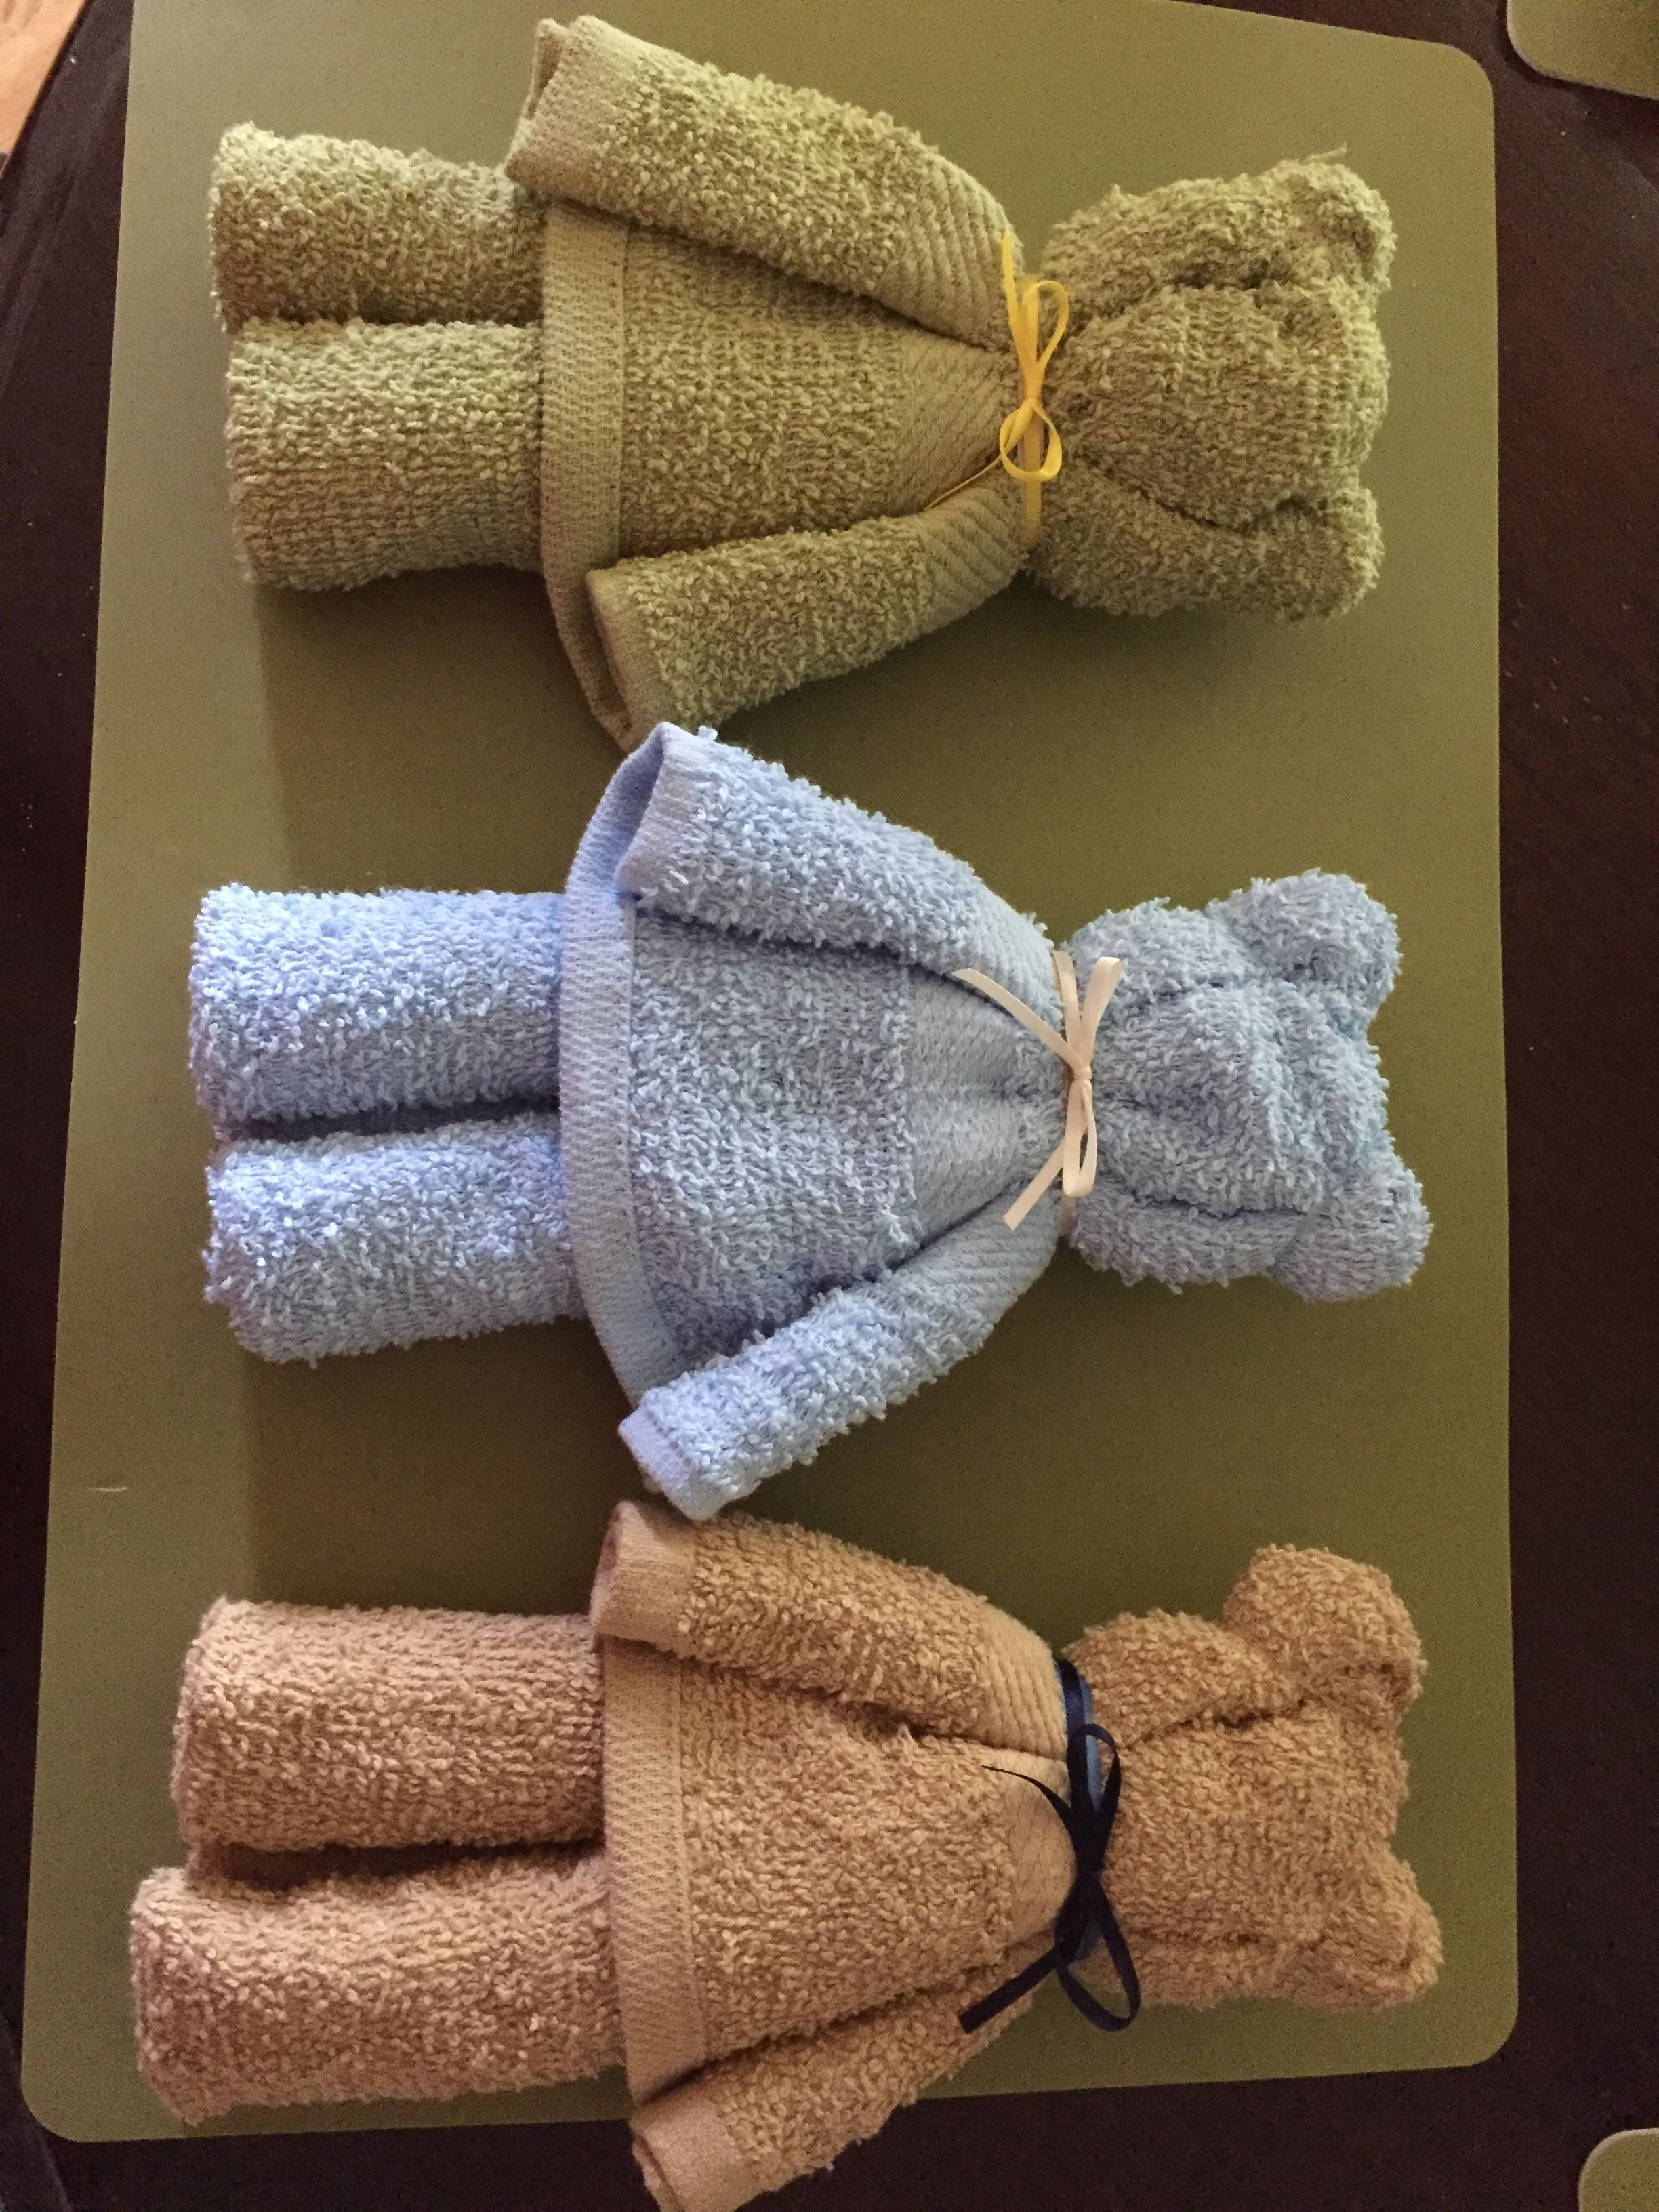 Bears made from dollar tree hand towels. Will put in operation shoebox this year #handtowels